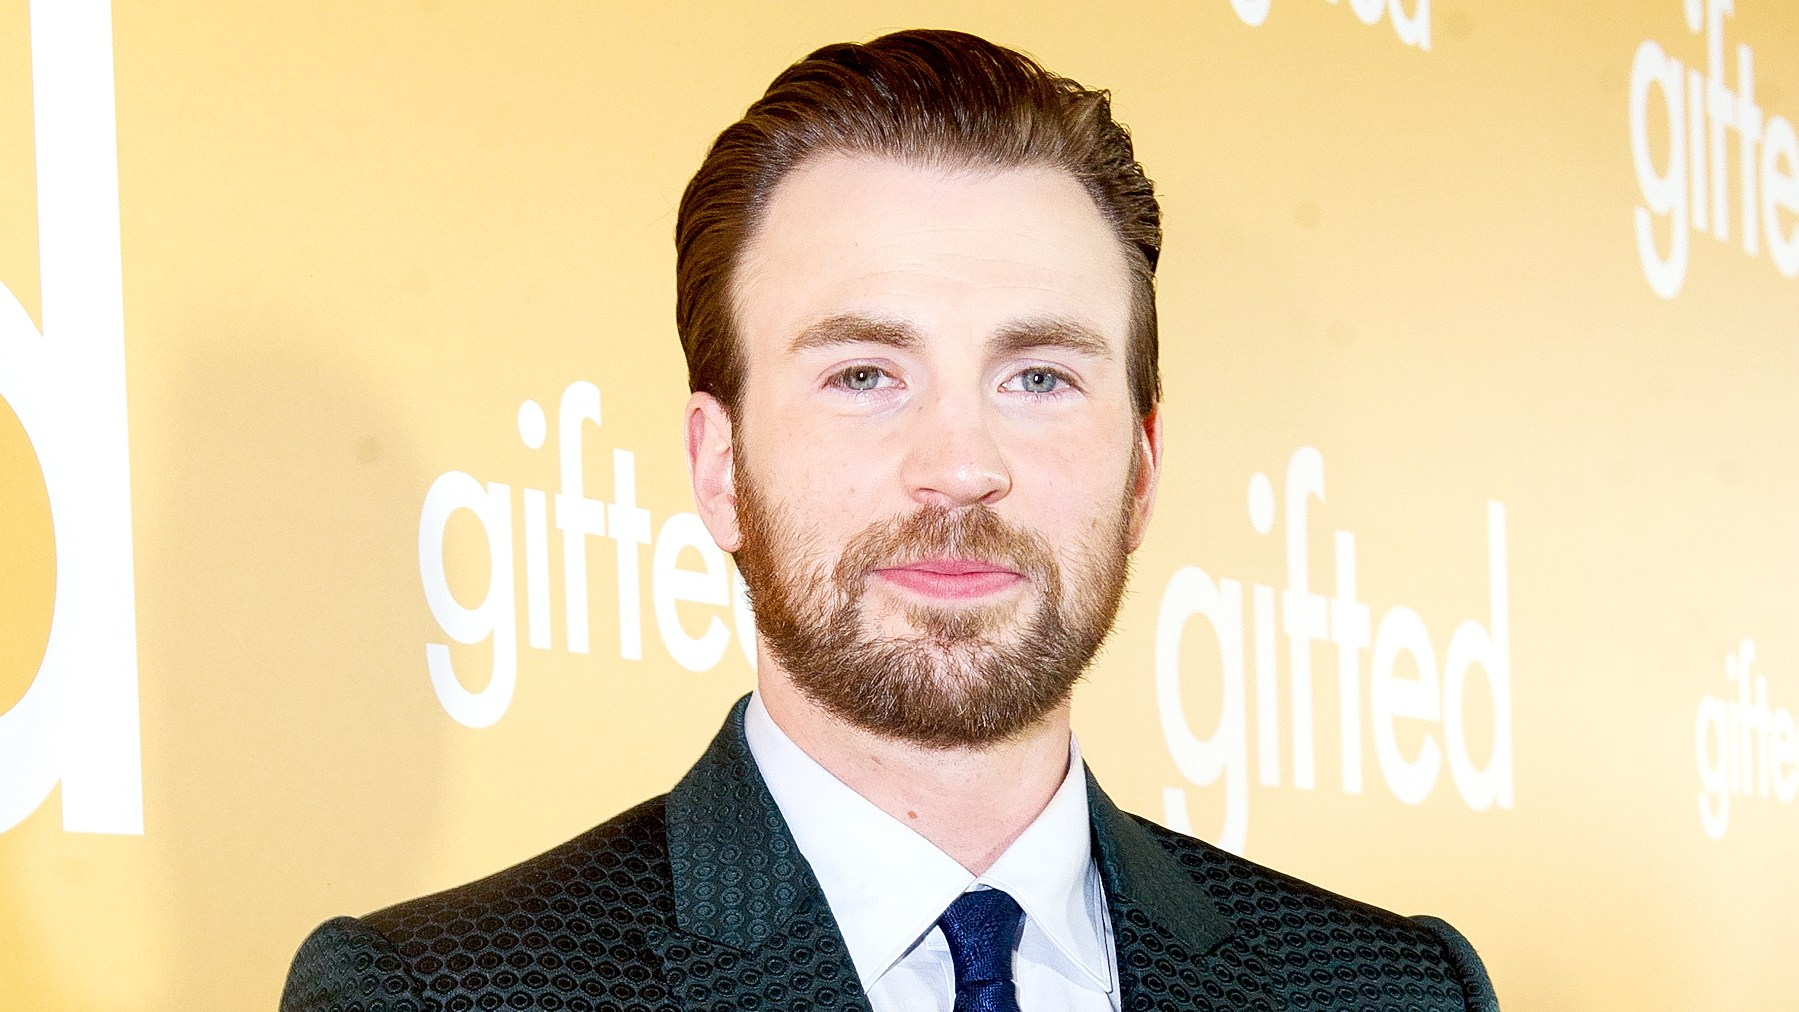 Chris Evans arrives at the premiere of Fox Searchlight Pictures' 'Gifted' at Pacific Theaters at the Grove on April 4, 2017 in Los Angeles, California.